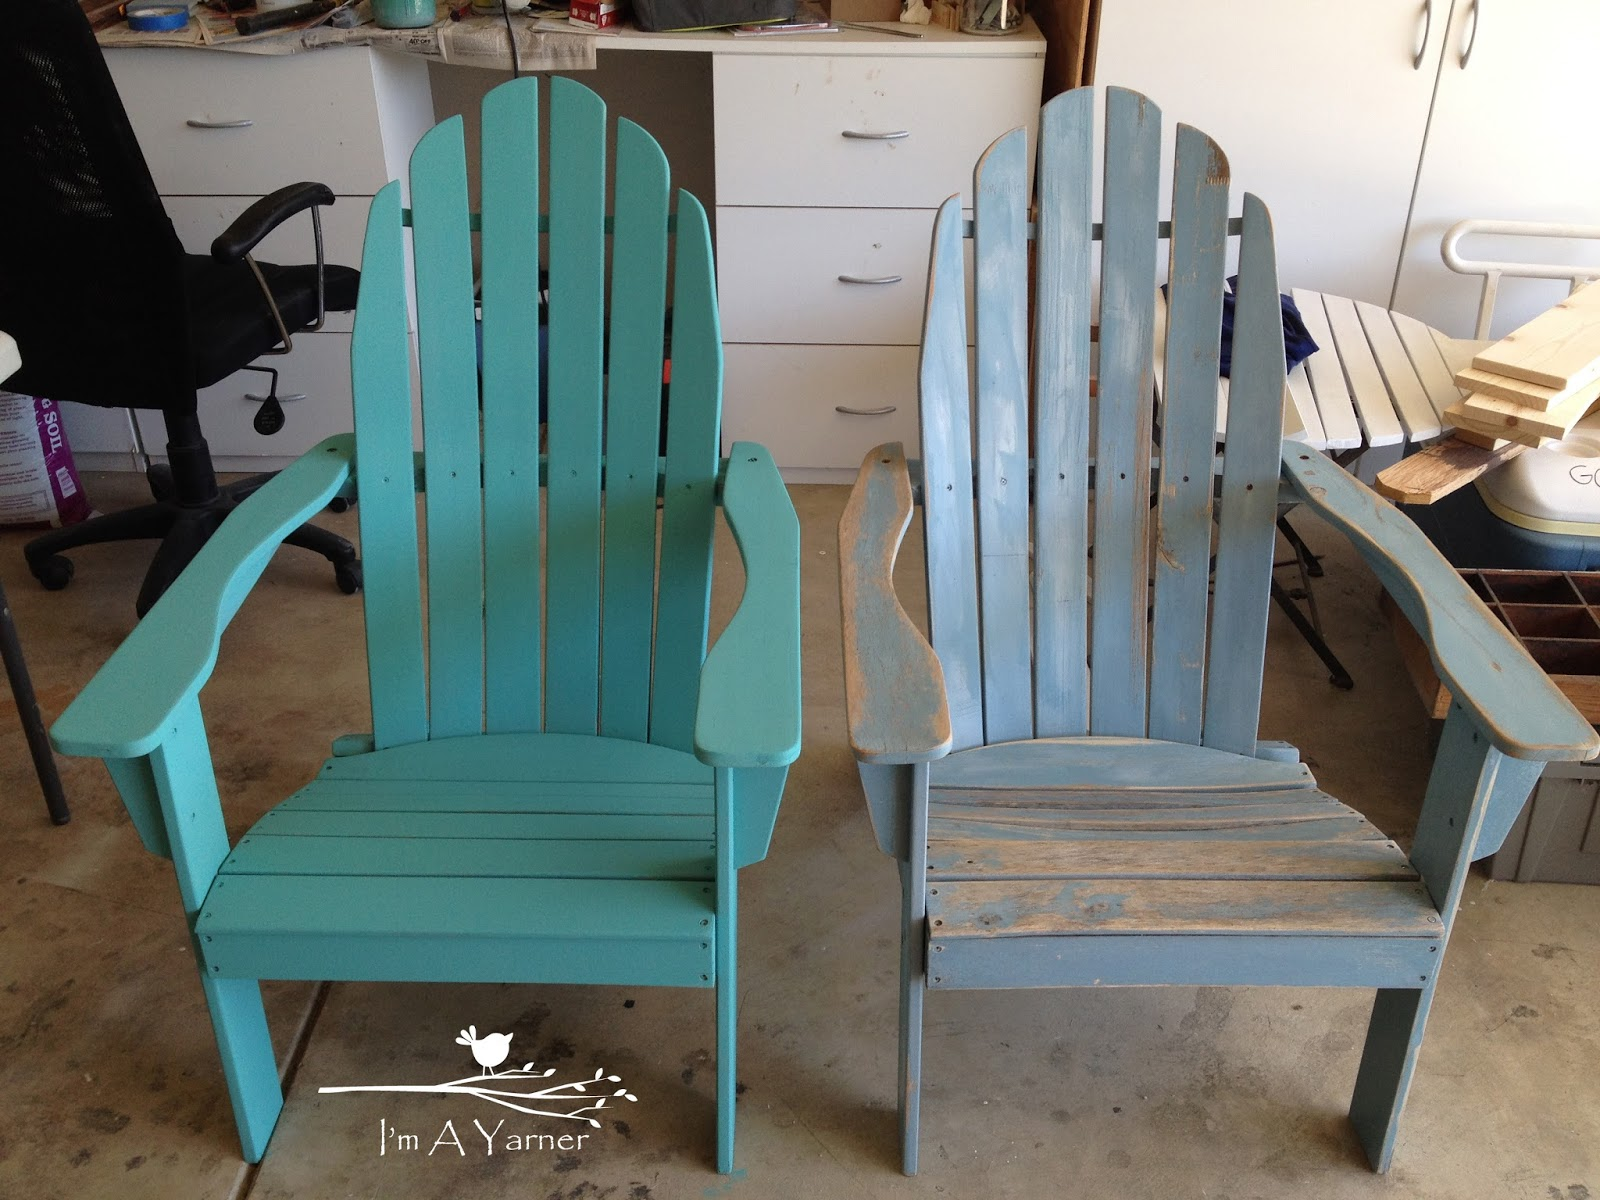 Ideas For Painting Adirondack Chairs Costco Outdoor I 39m A Yarner Updated